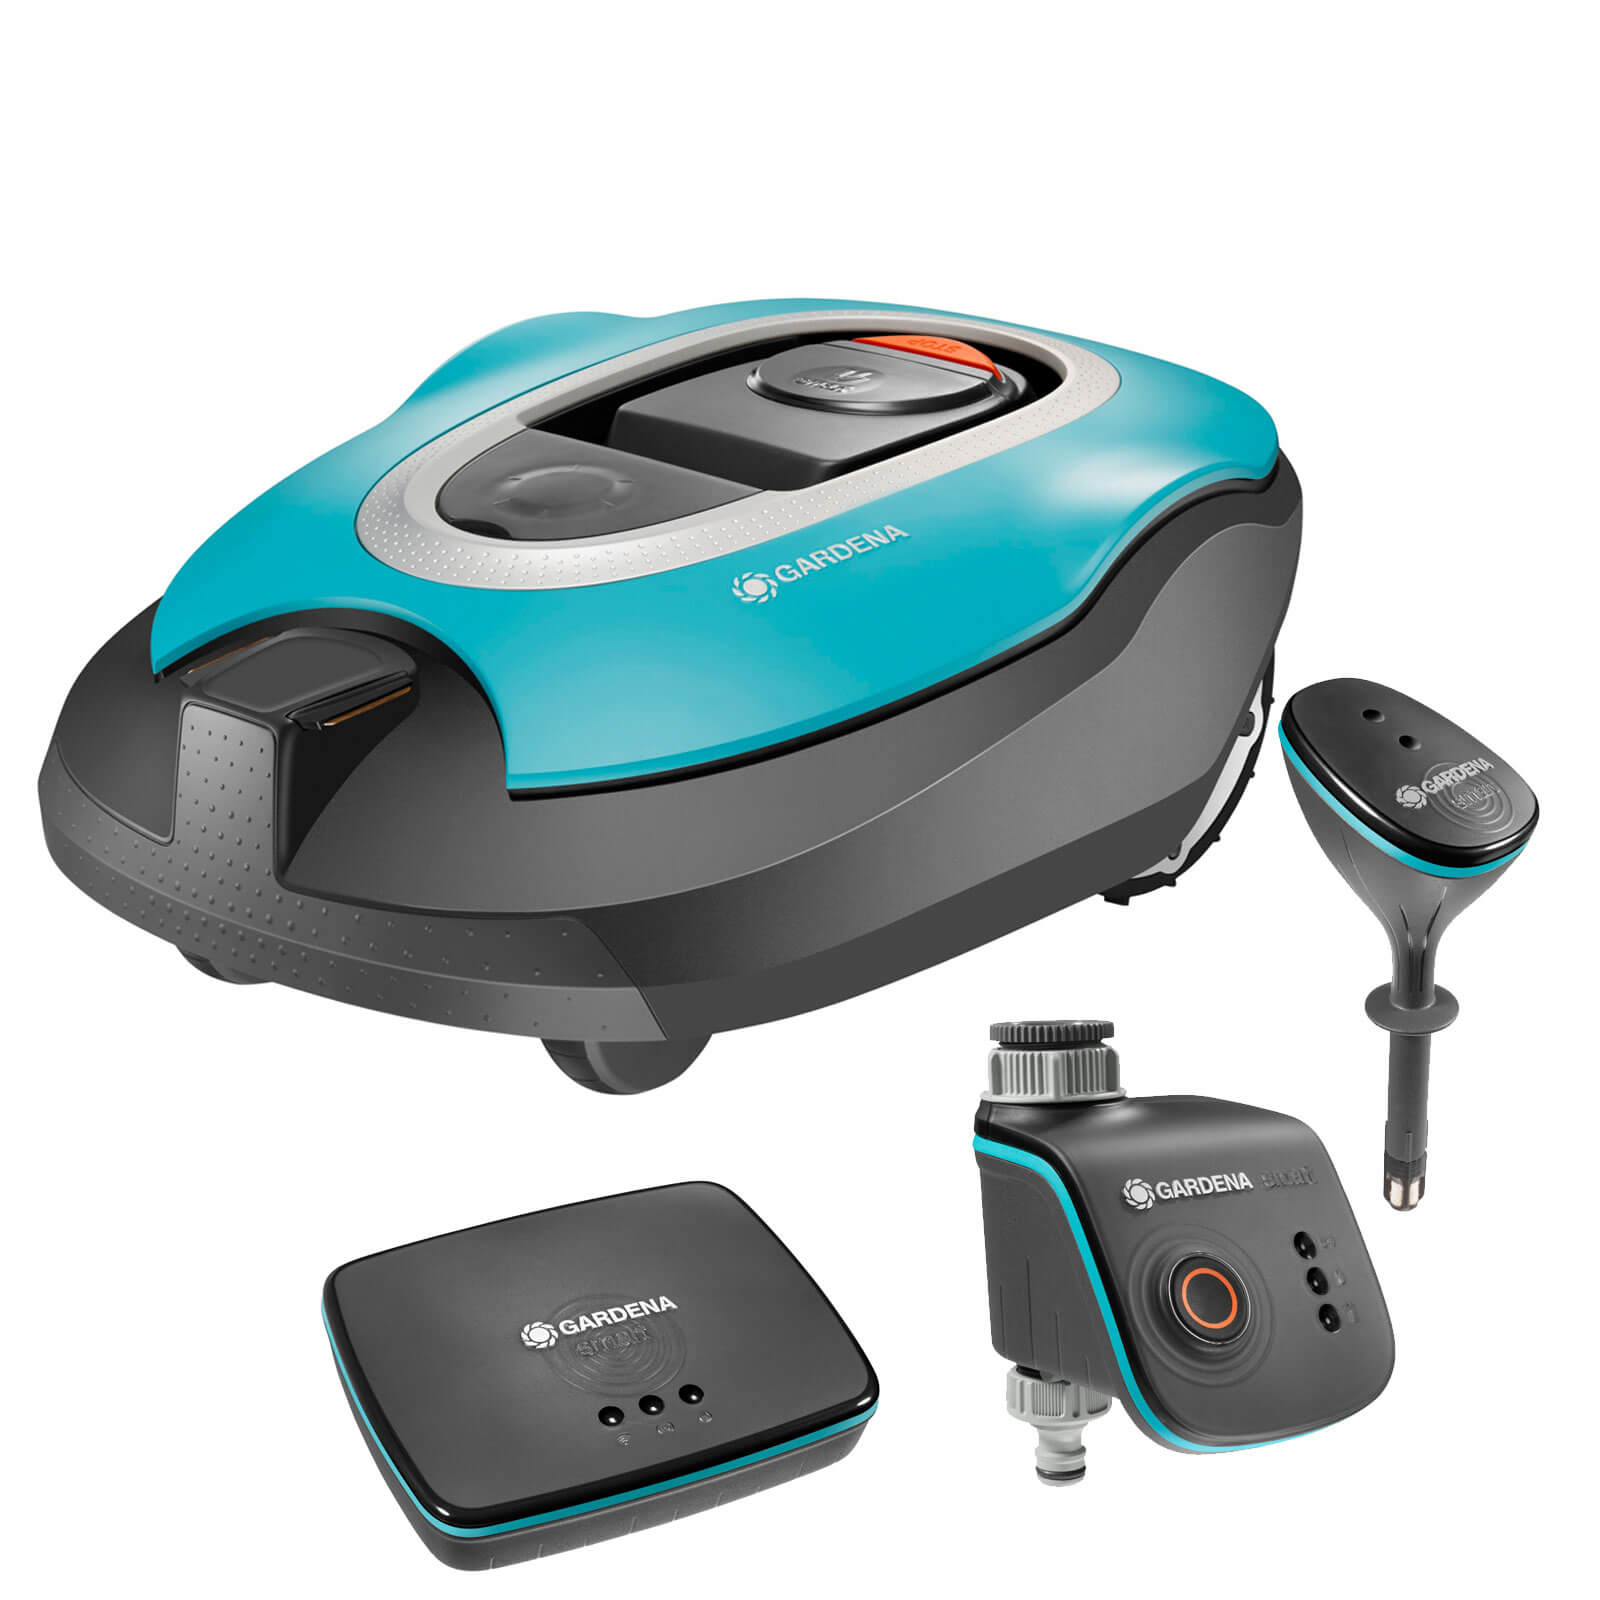 Image of Gardena SILENO Robotic Mower & Smart System Set 1 x 2ah Integrated Li-ion Charger